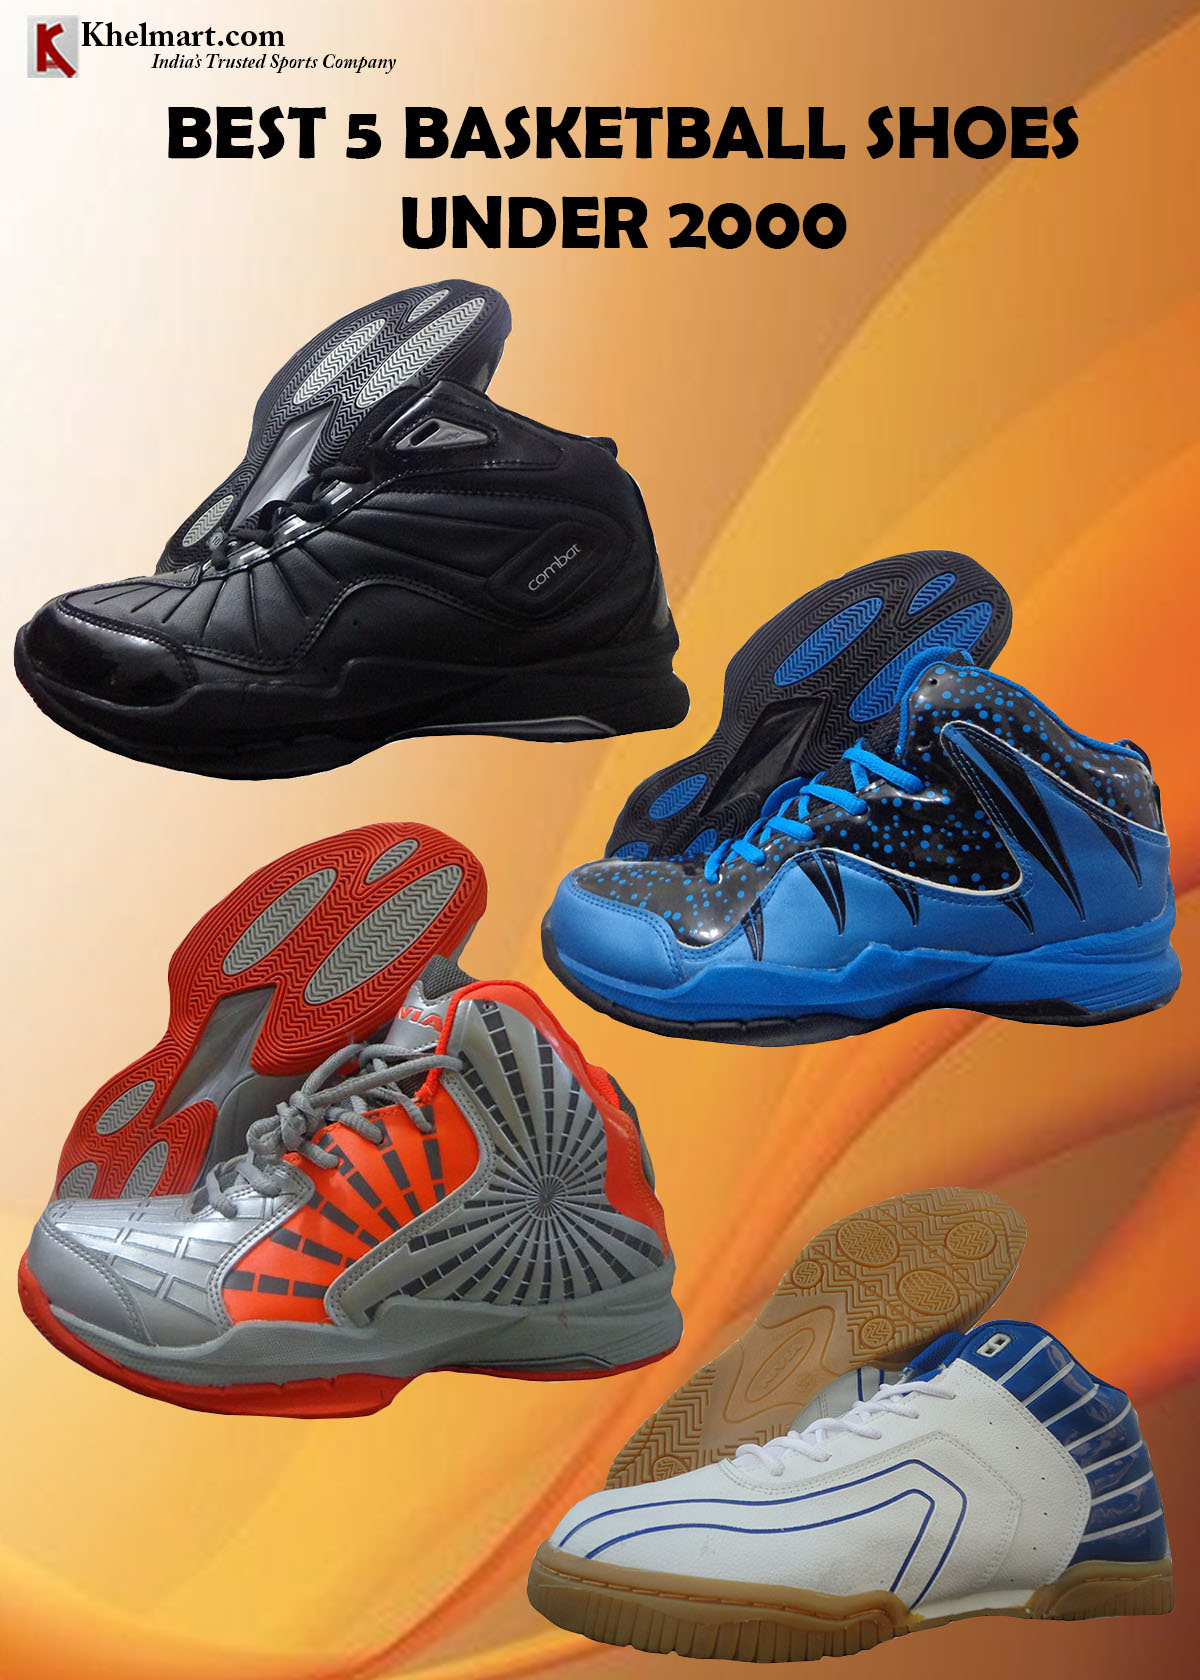 Best Basketball Shoes Under 2000